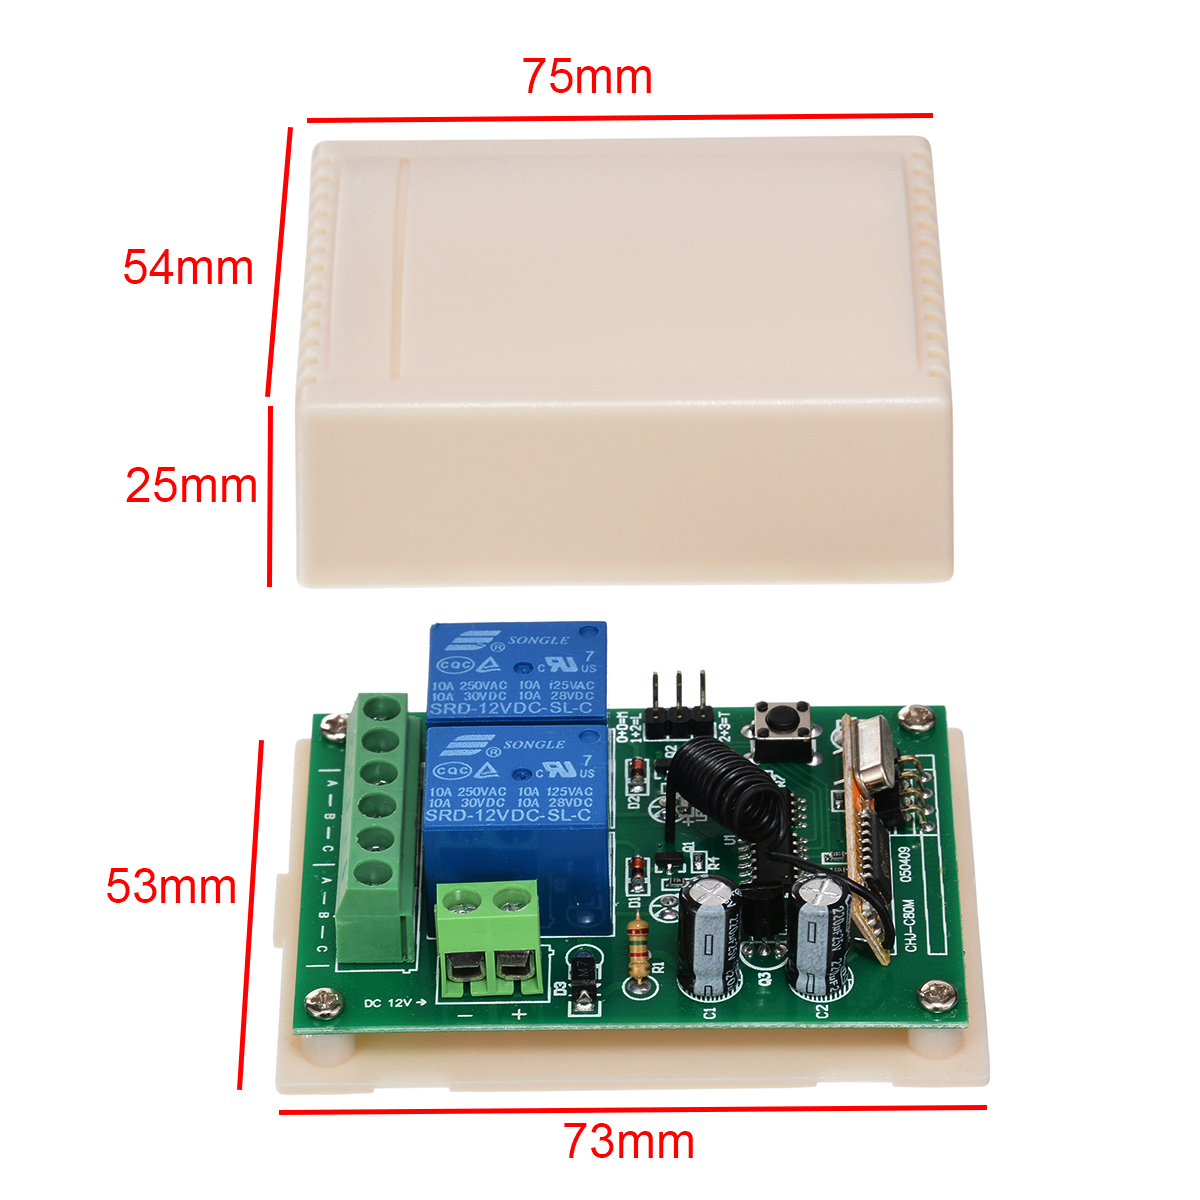 2 CH Garage Door Window Remote Control Switch Relay Normally Open & Closed Wireless Transmitter + Receiver 433MHZ 50m-100m